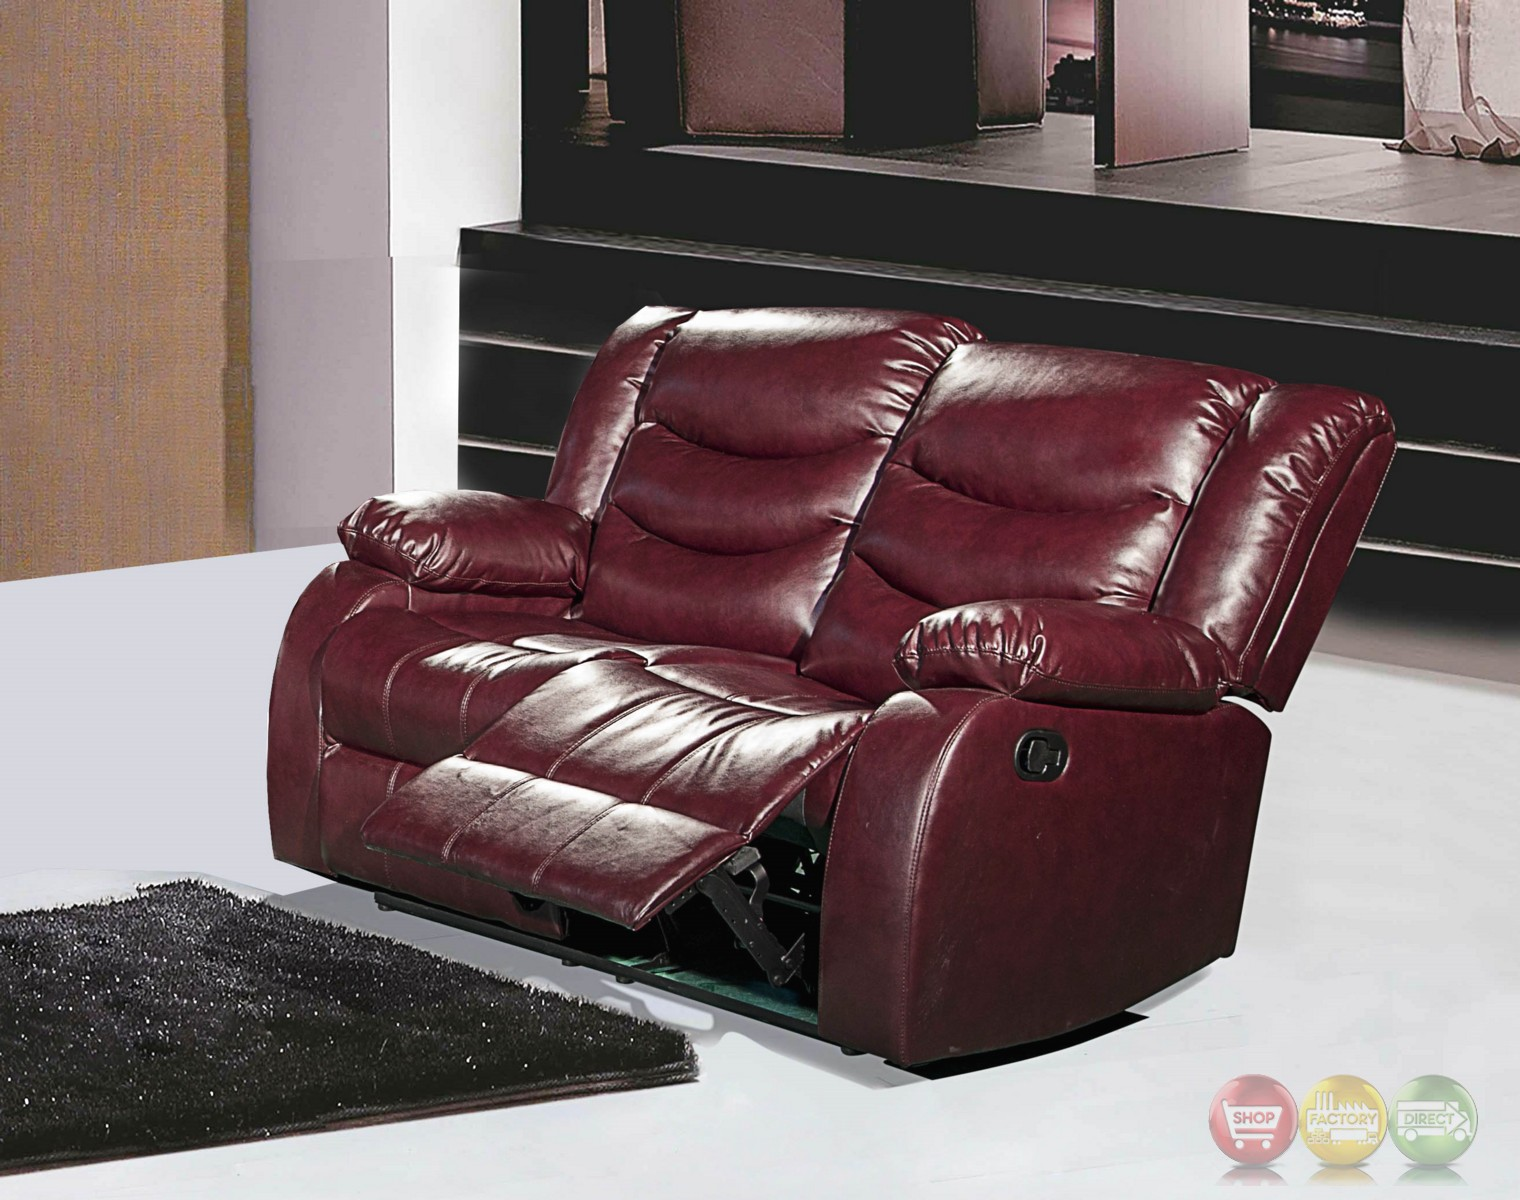 644burg burgundy leather reclining loveseat with pillow arms